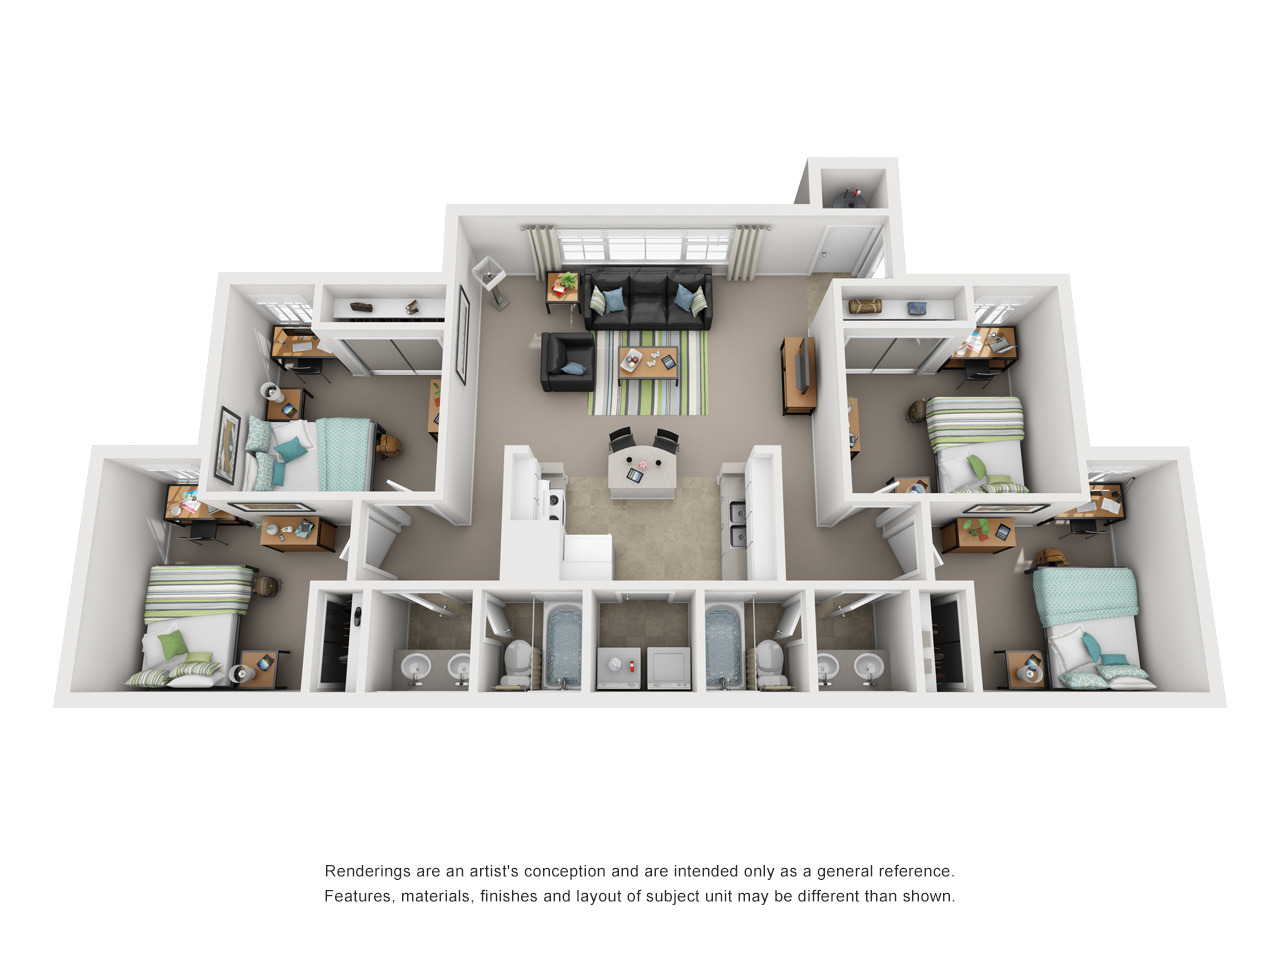 Four-bed, two-bath floor plan